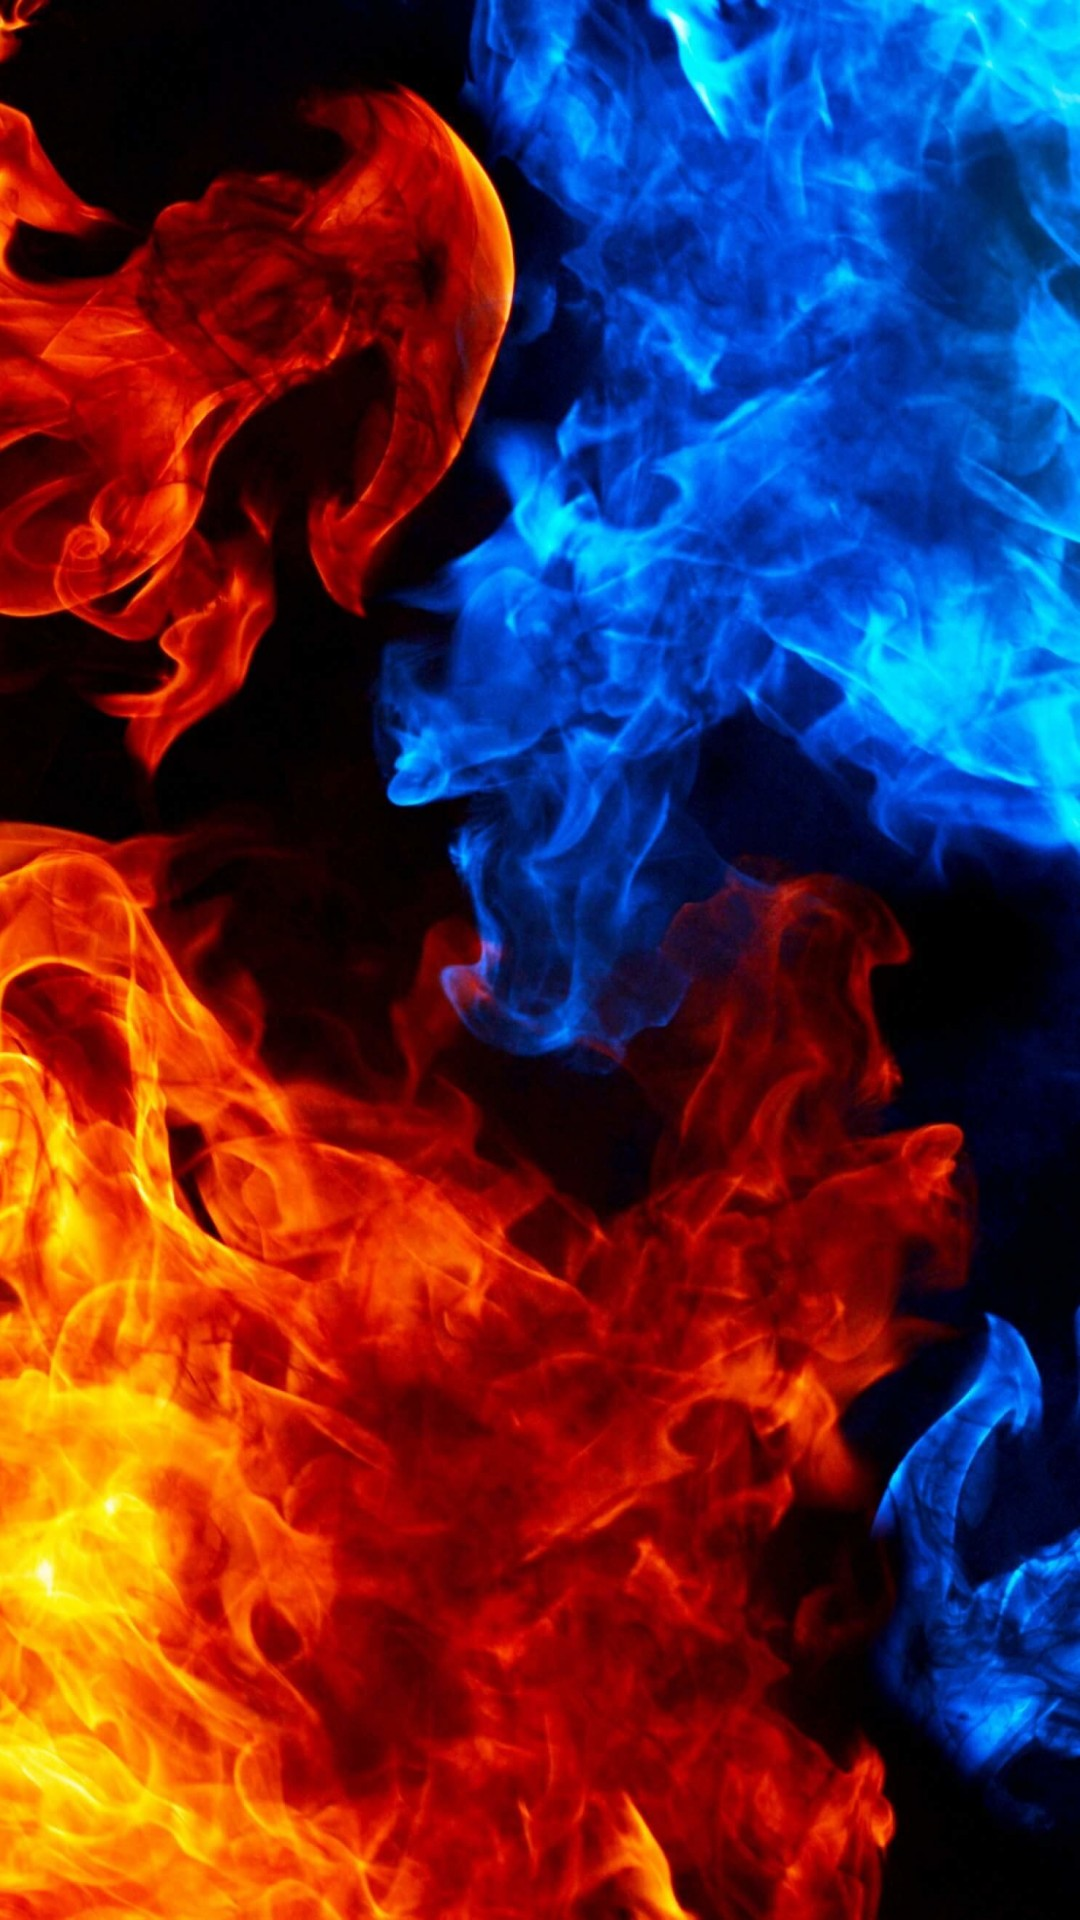 Blue And Red Fire Wallpaper for Google Nexus 5